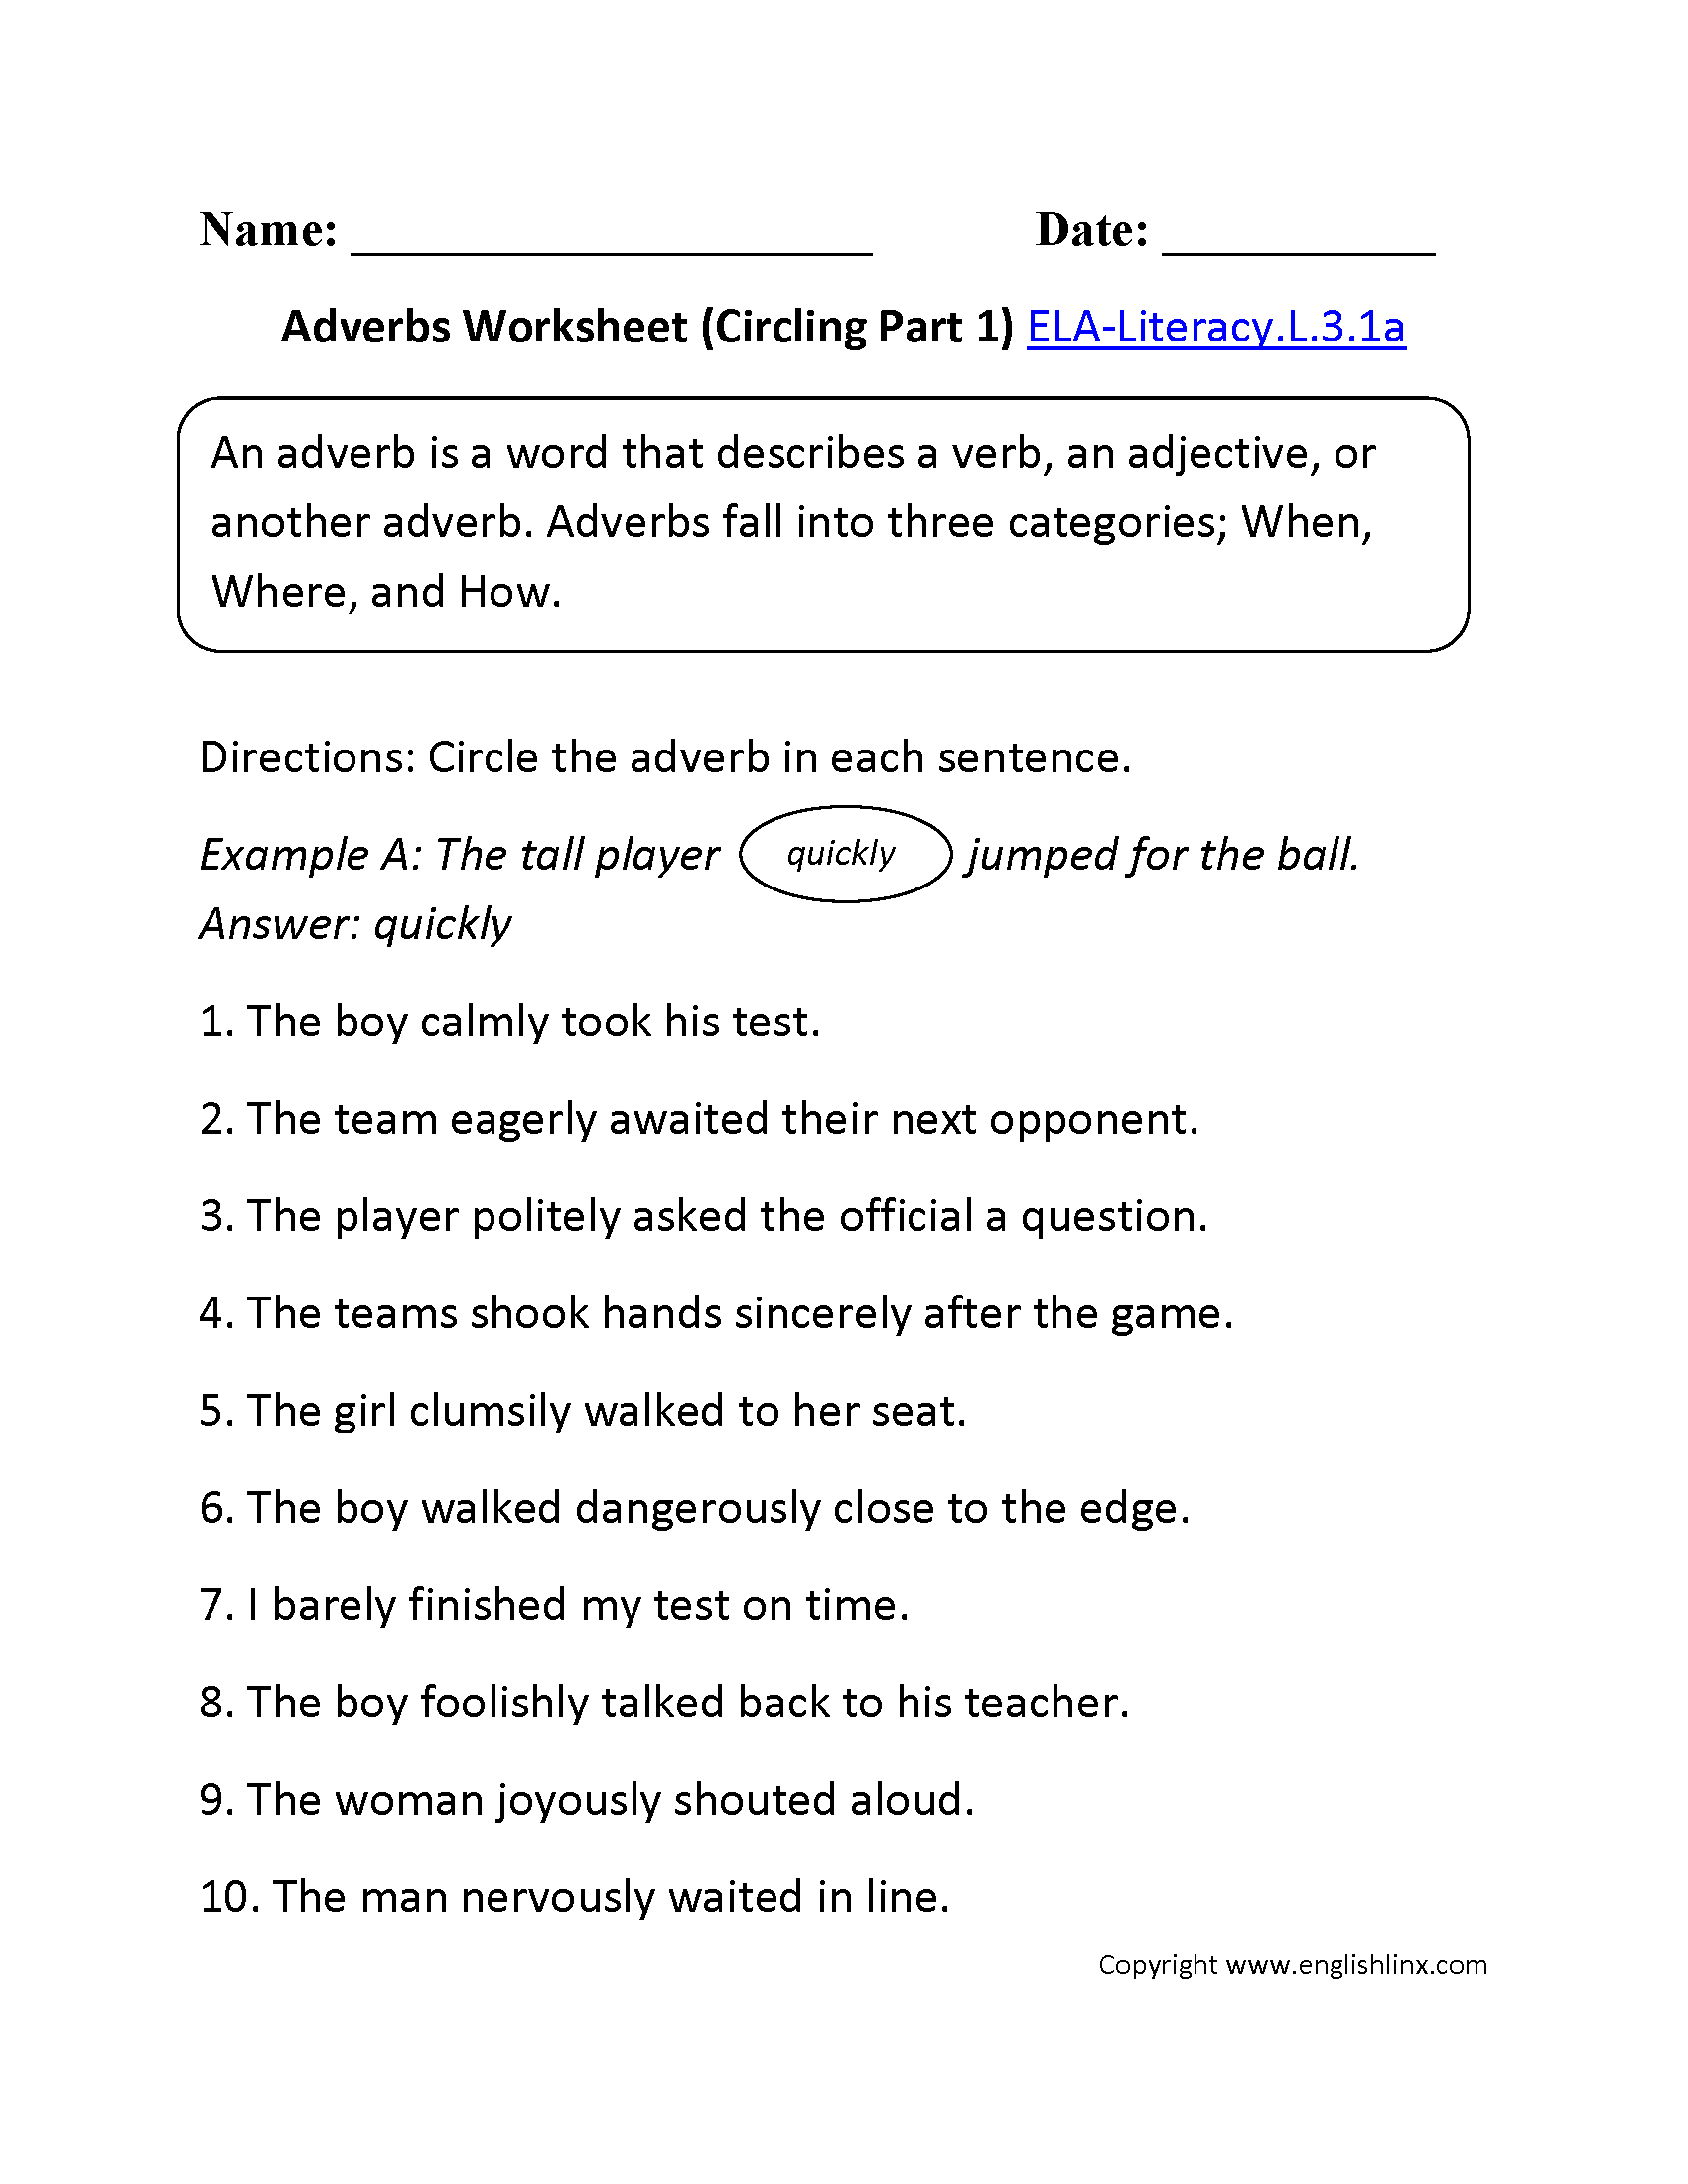 Worksheet Adverbs Worksheets For Grade 3 worksheet adverbs for grade 3 noconformity free 1000 images about l 1 on pinterest common cores worksheets